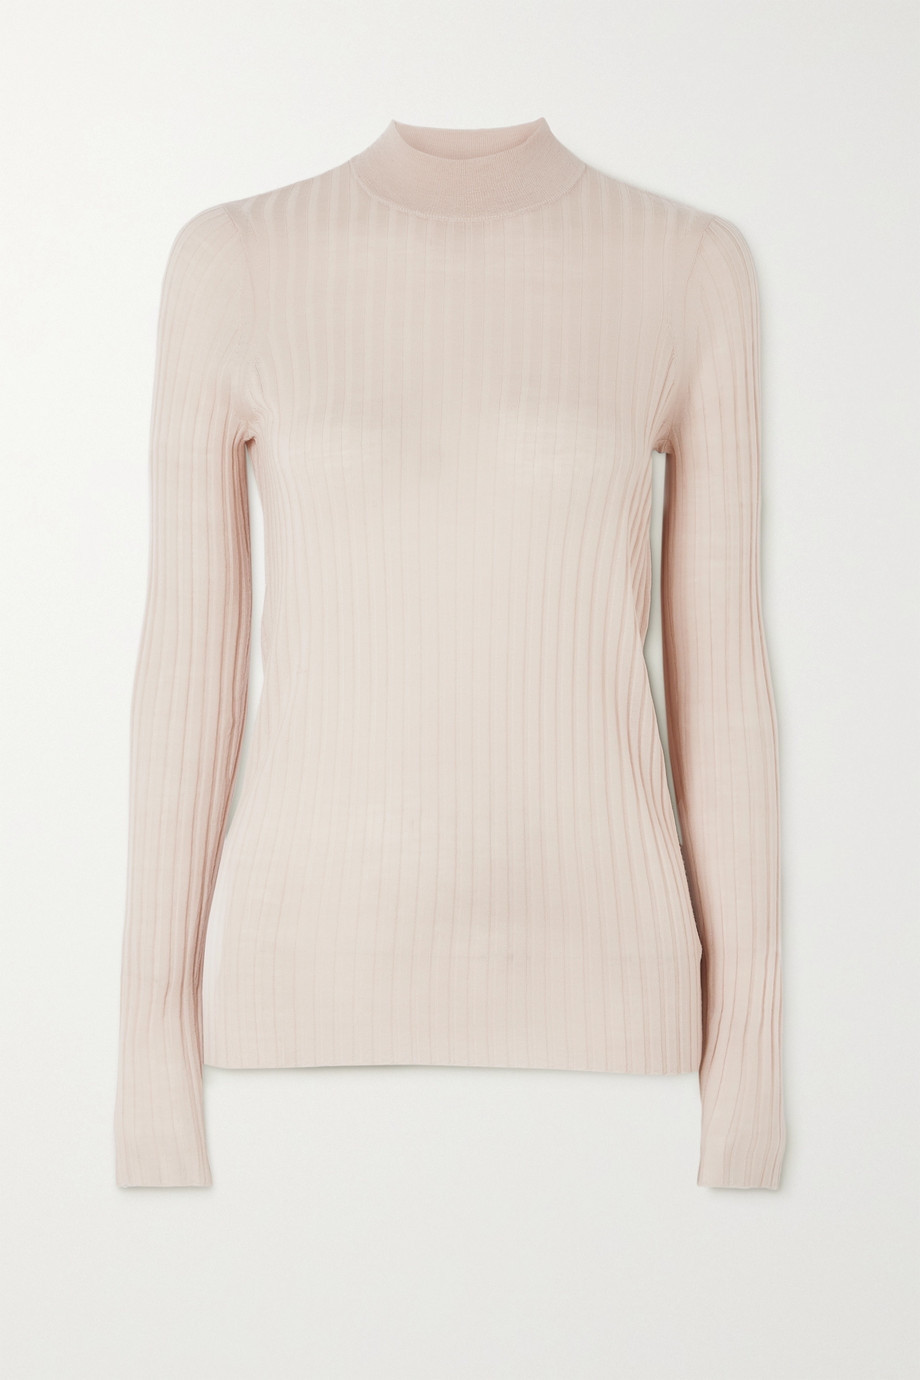 ATM ANTHONY THOMAS MELILLO Ribbed wool top